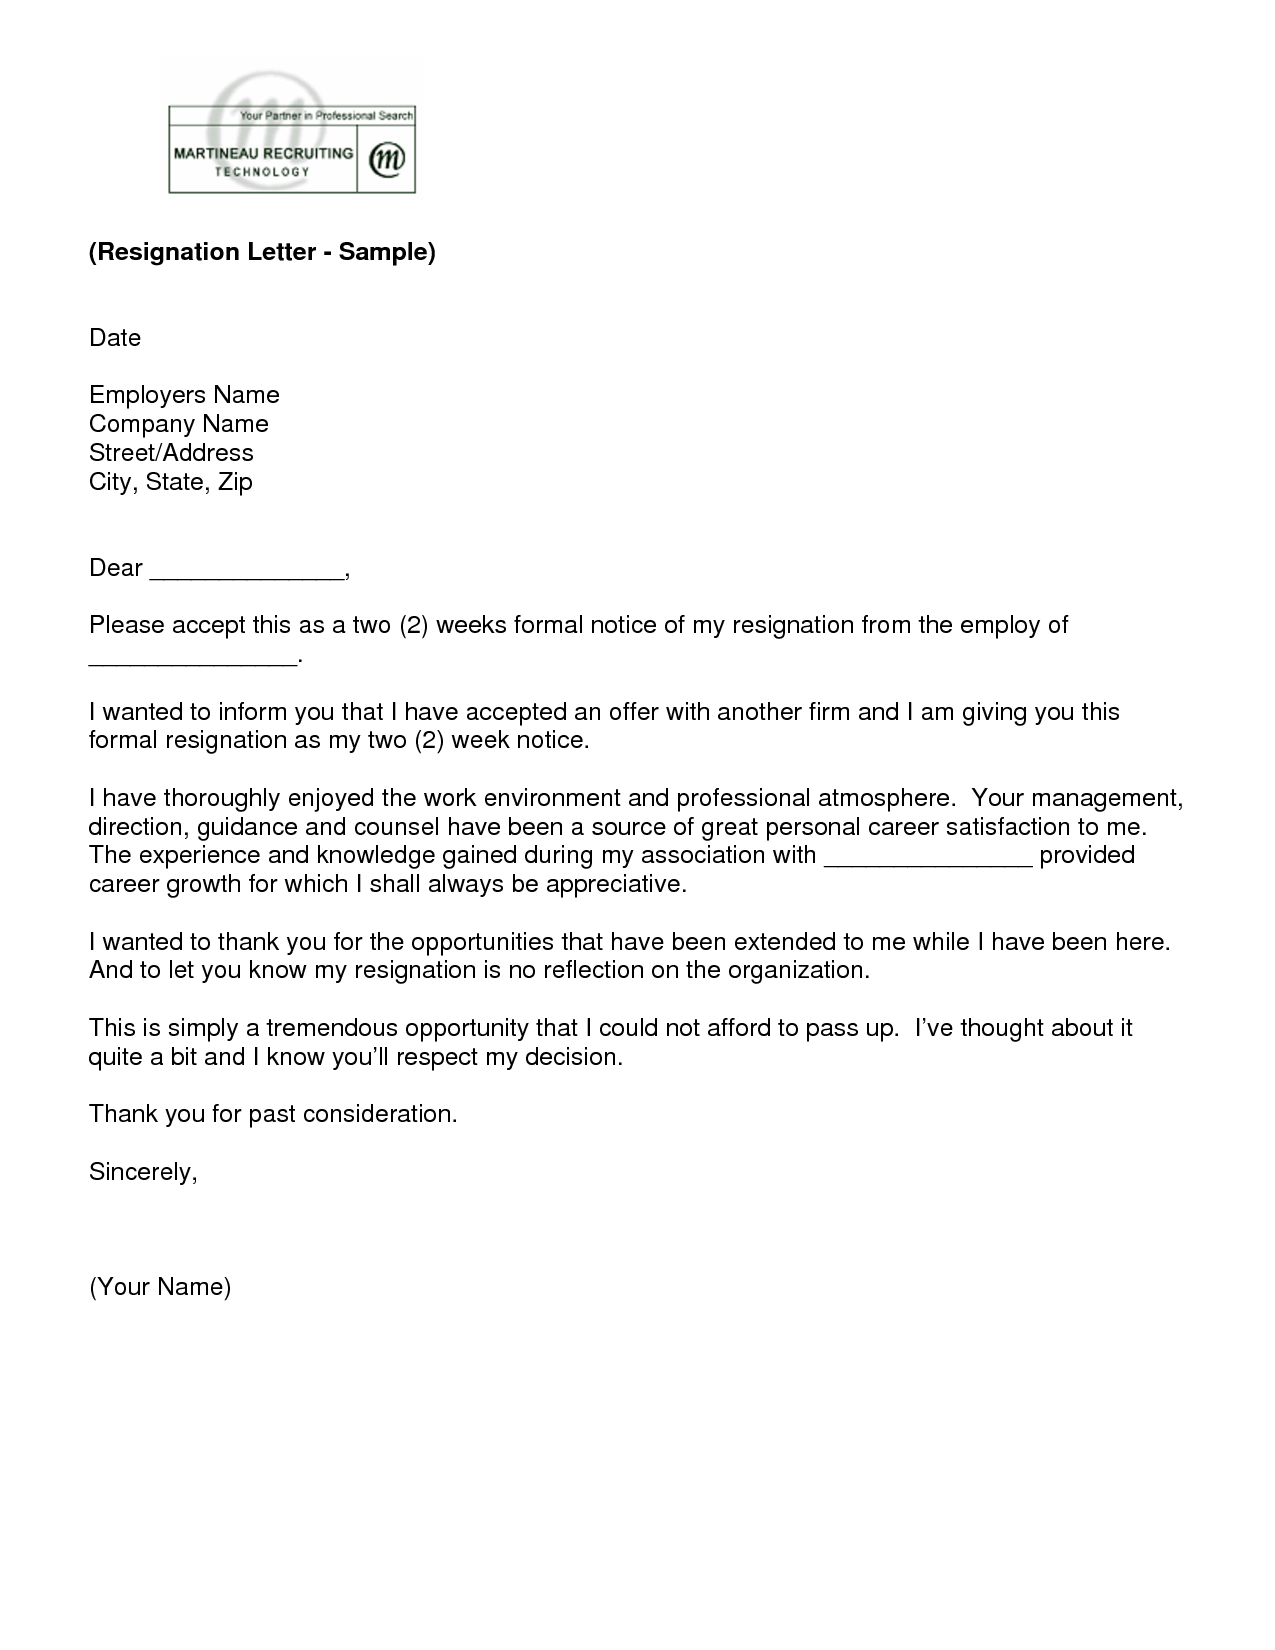 Good Letter Of Resignation 2 Weeks Notice Template